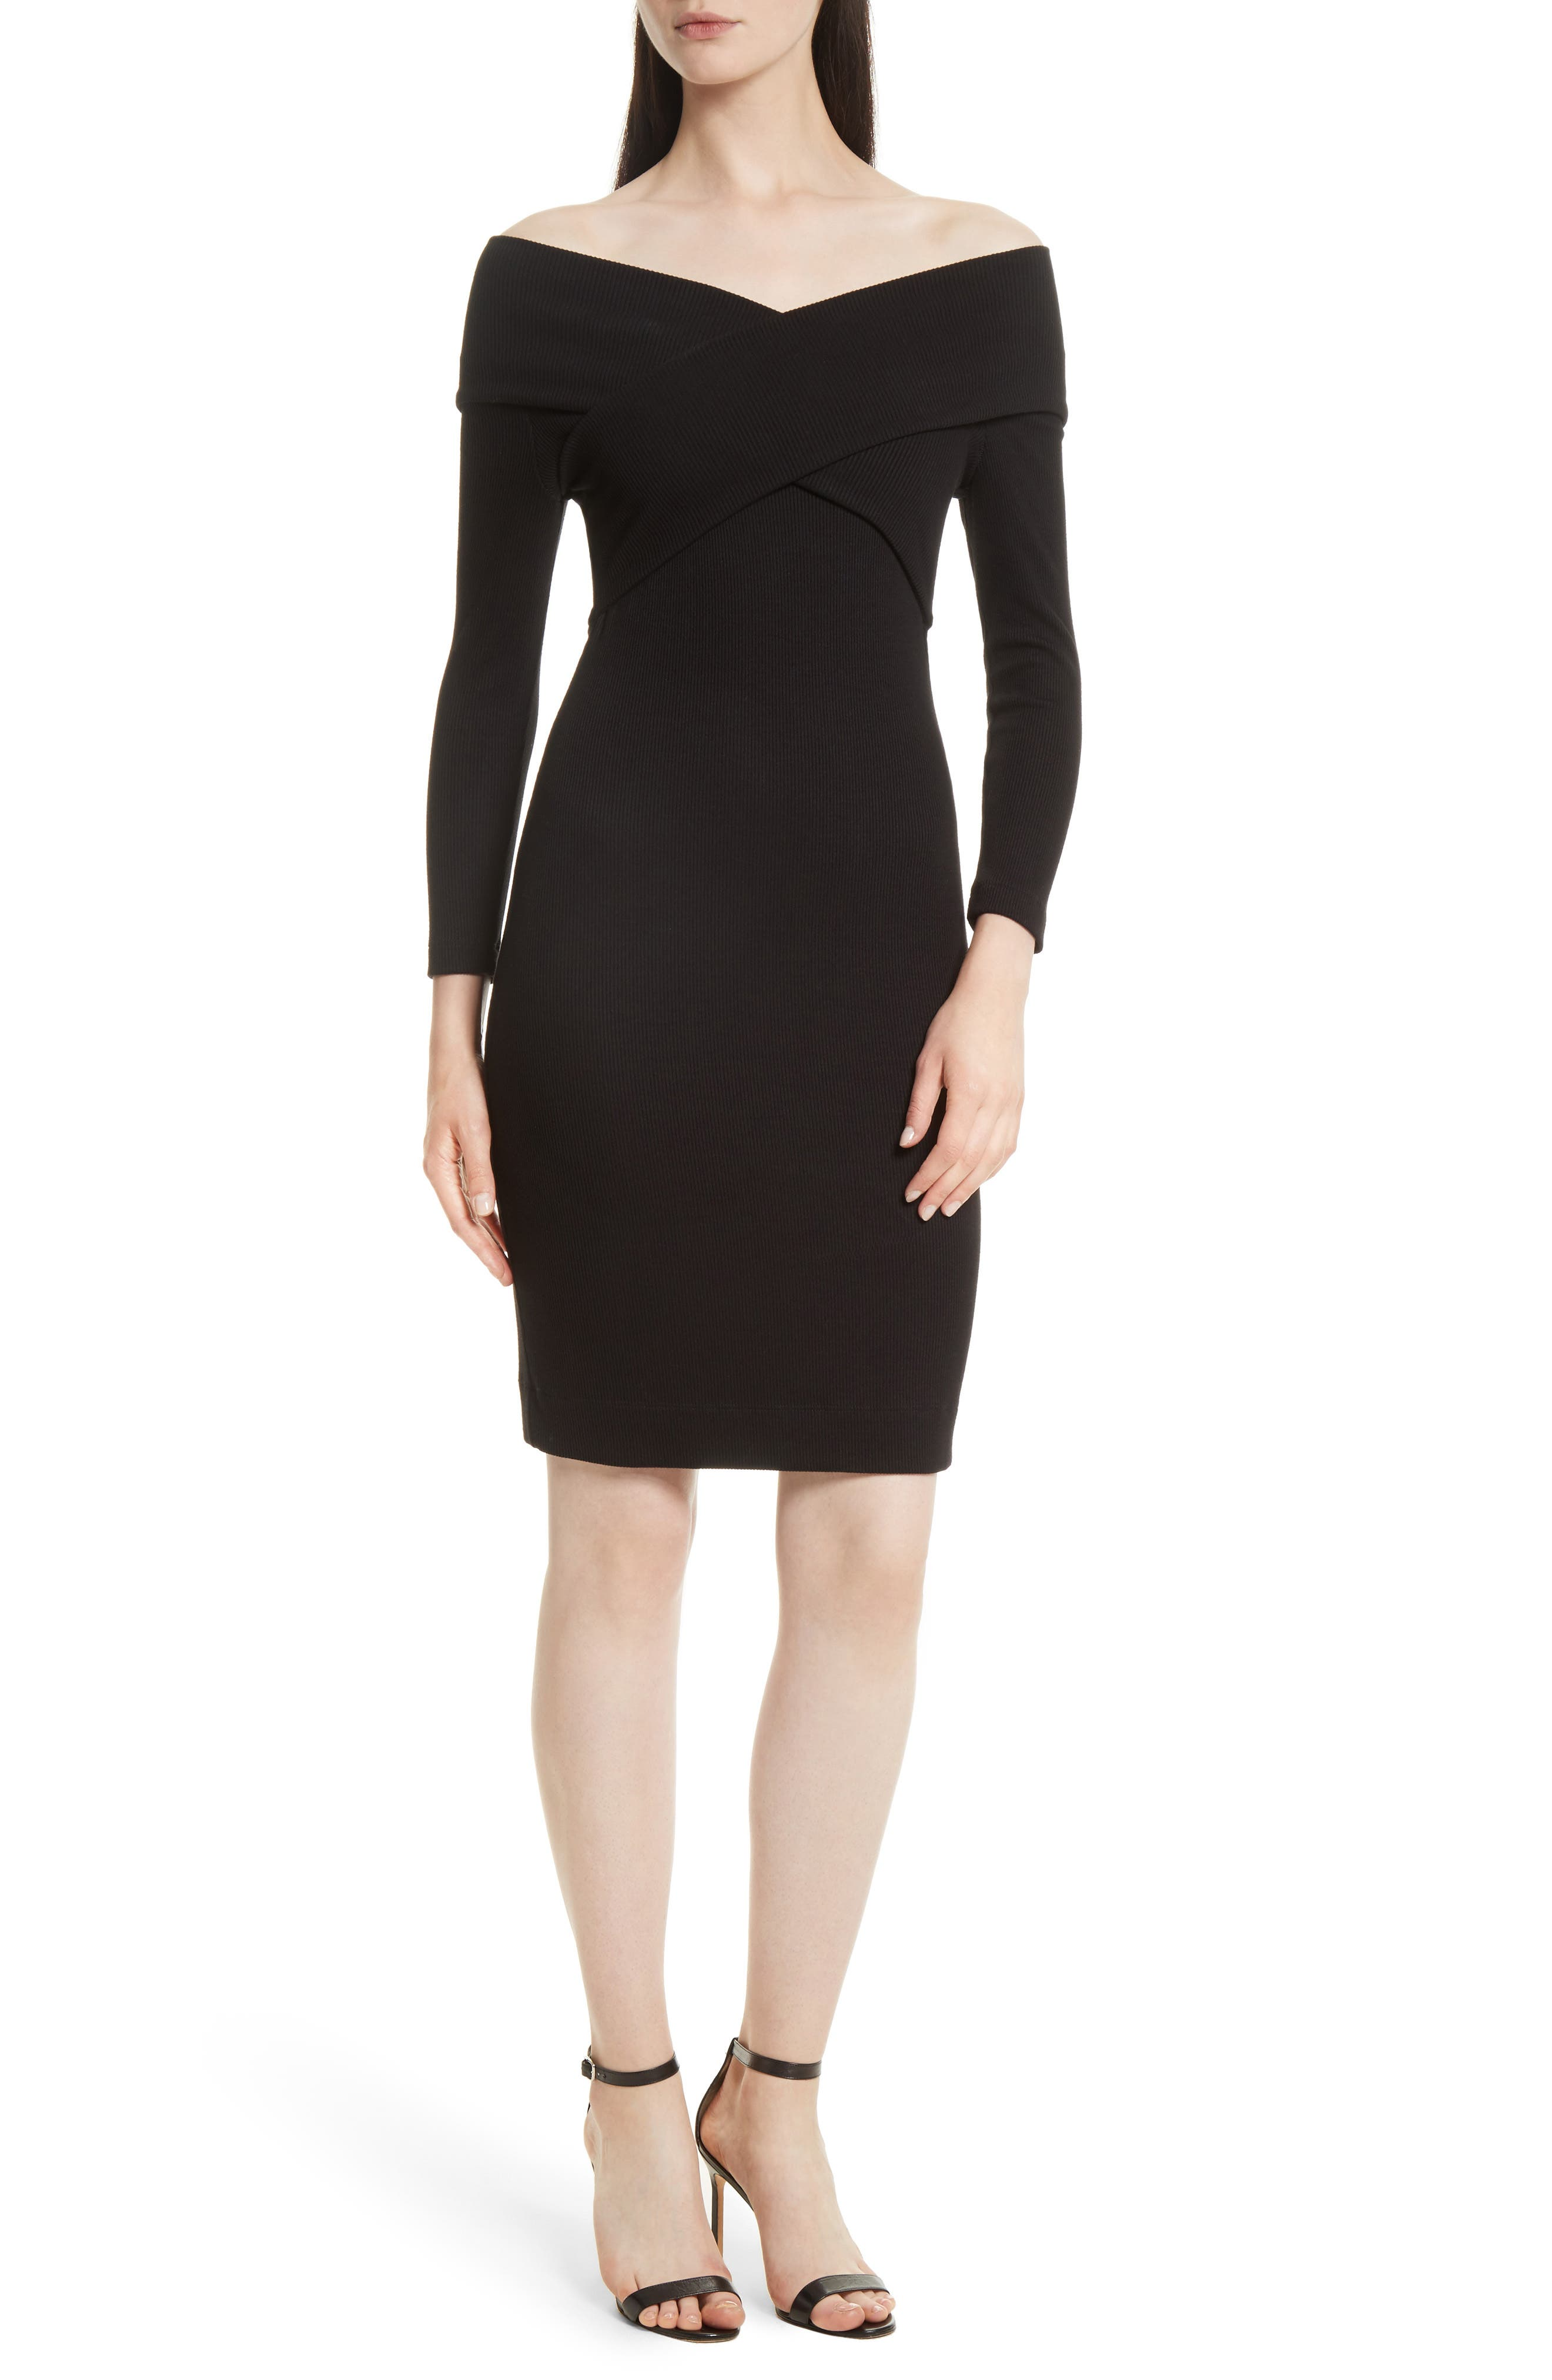 L'AGENCE Fantina Rib Knit Off the Shoulder Dress